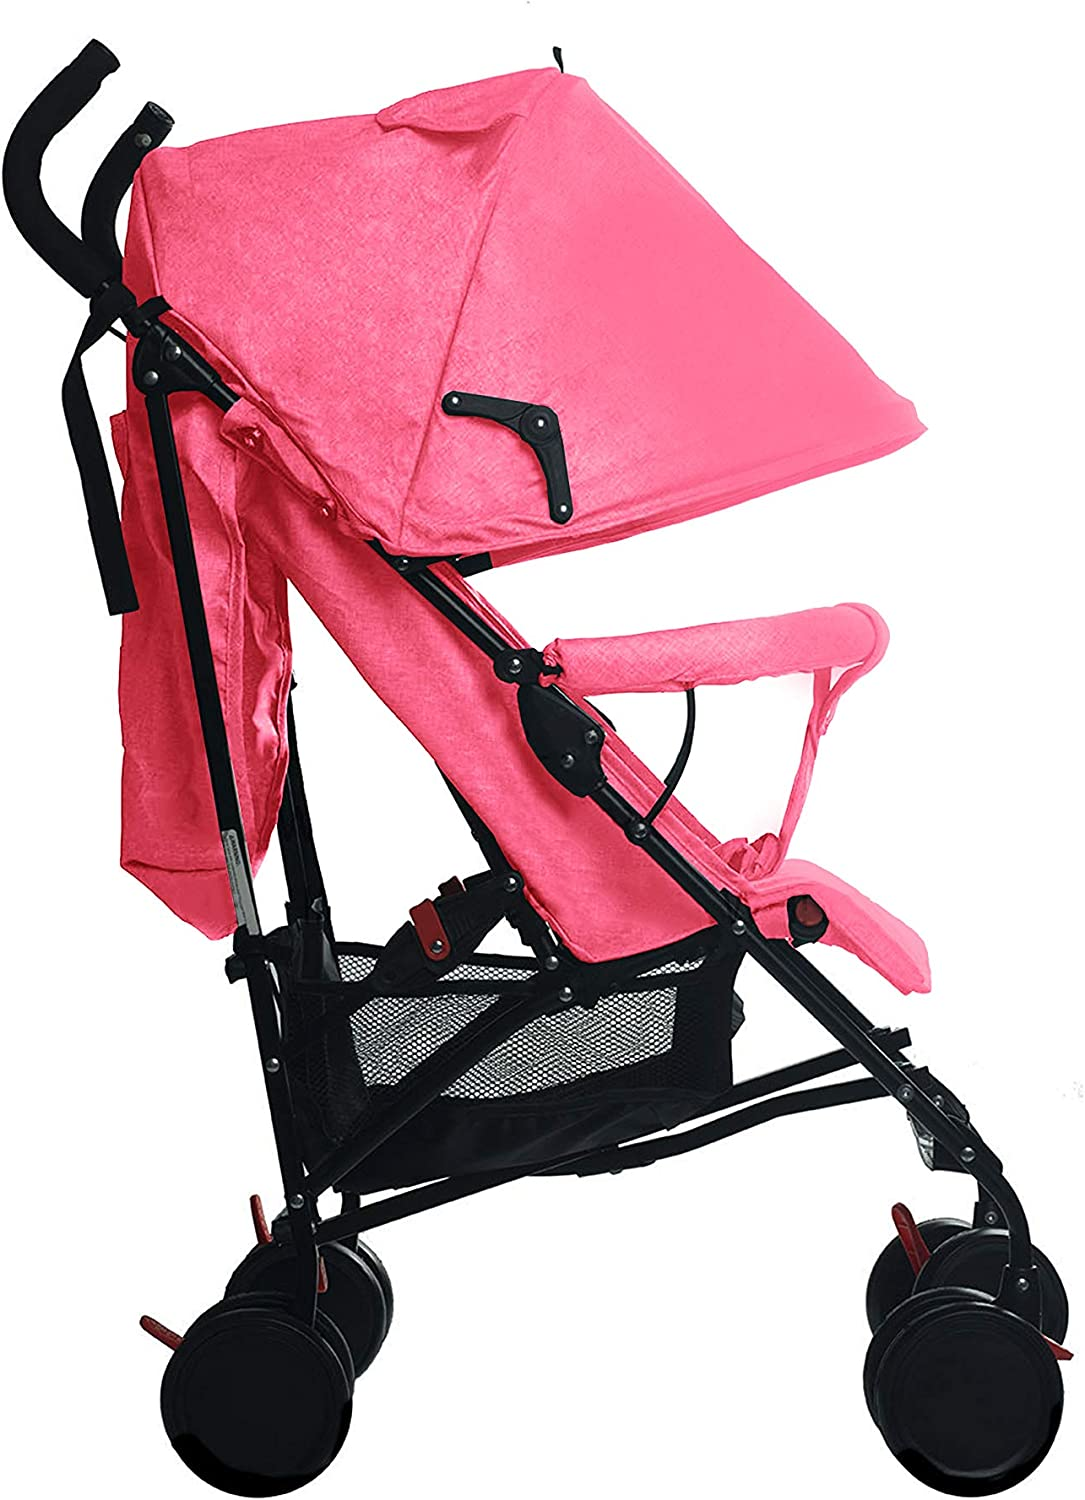 Stroller for Kids Lightweight Buggy Easy Fold Travel Multi-Functional Stroller Buggy Foldable for Travel Lightweight and Foldable Design Convenient to Store and Carry Pink